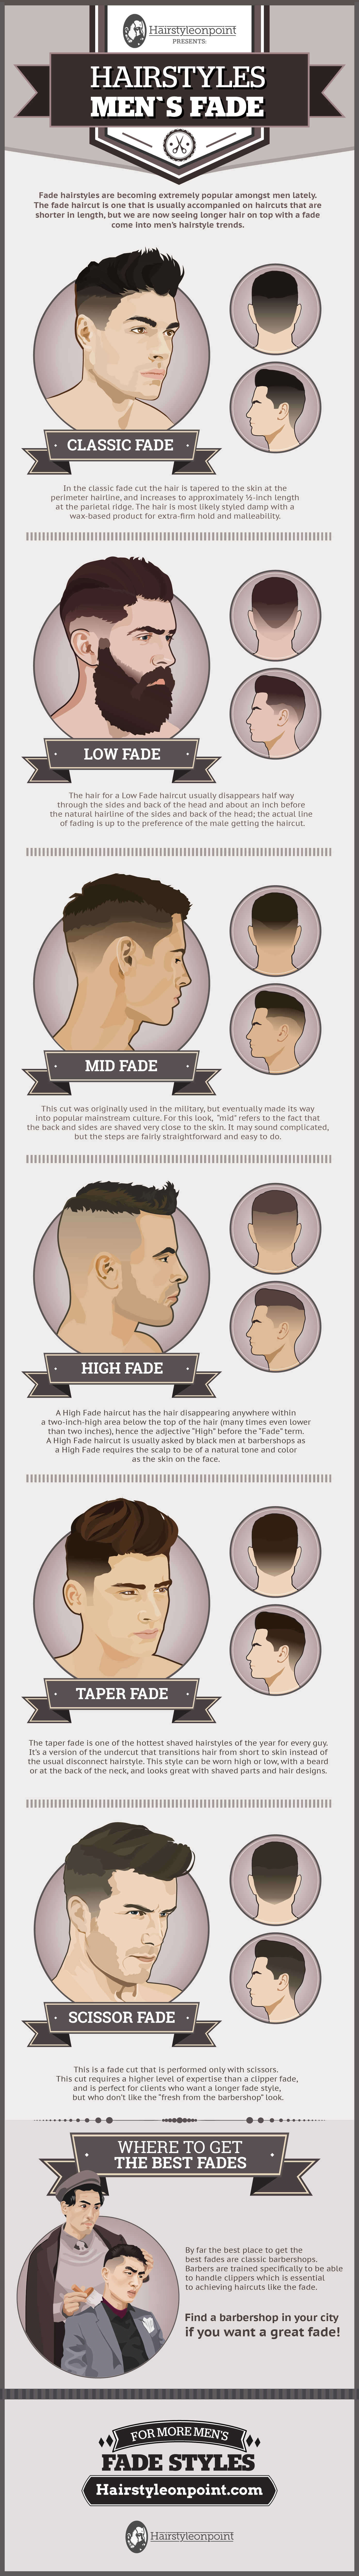 Best simple haircut for men menus hairstyles a simple guide to popular and modern fades